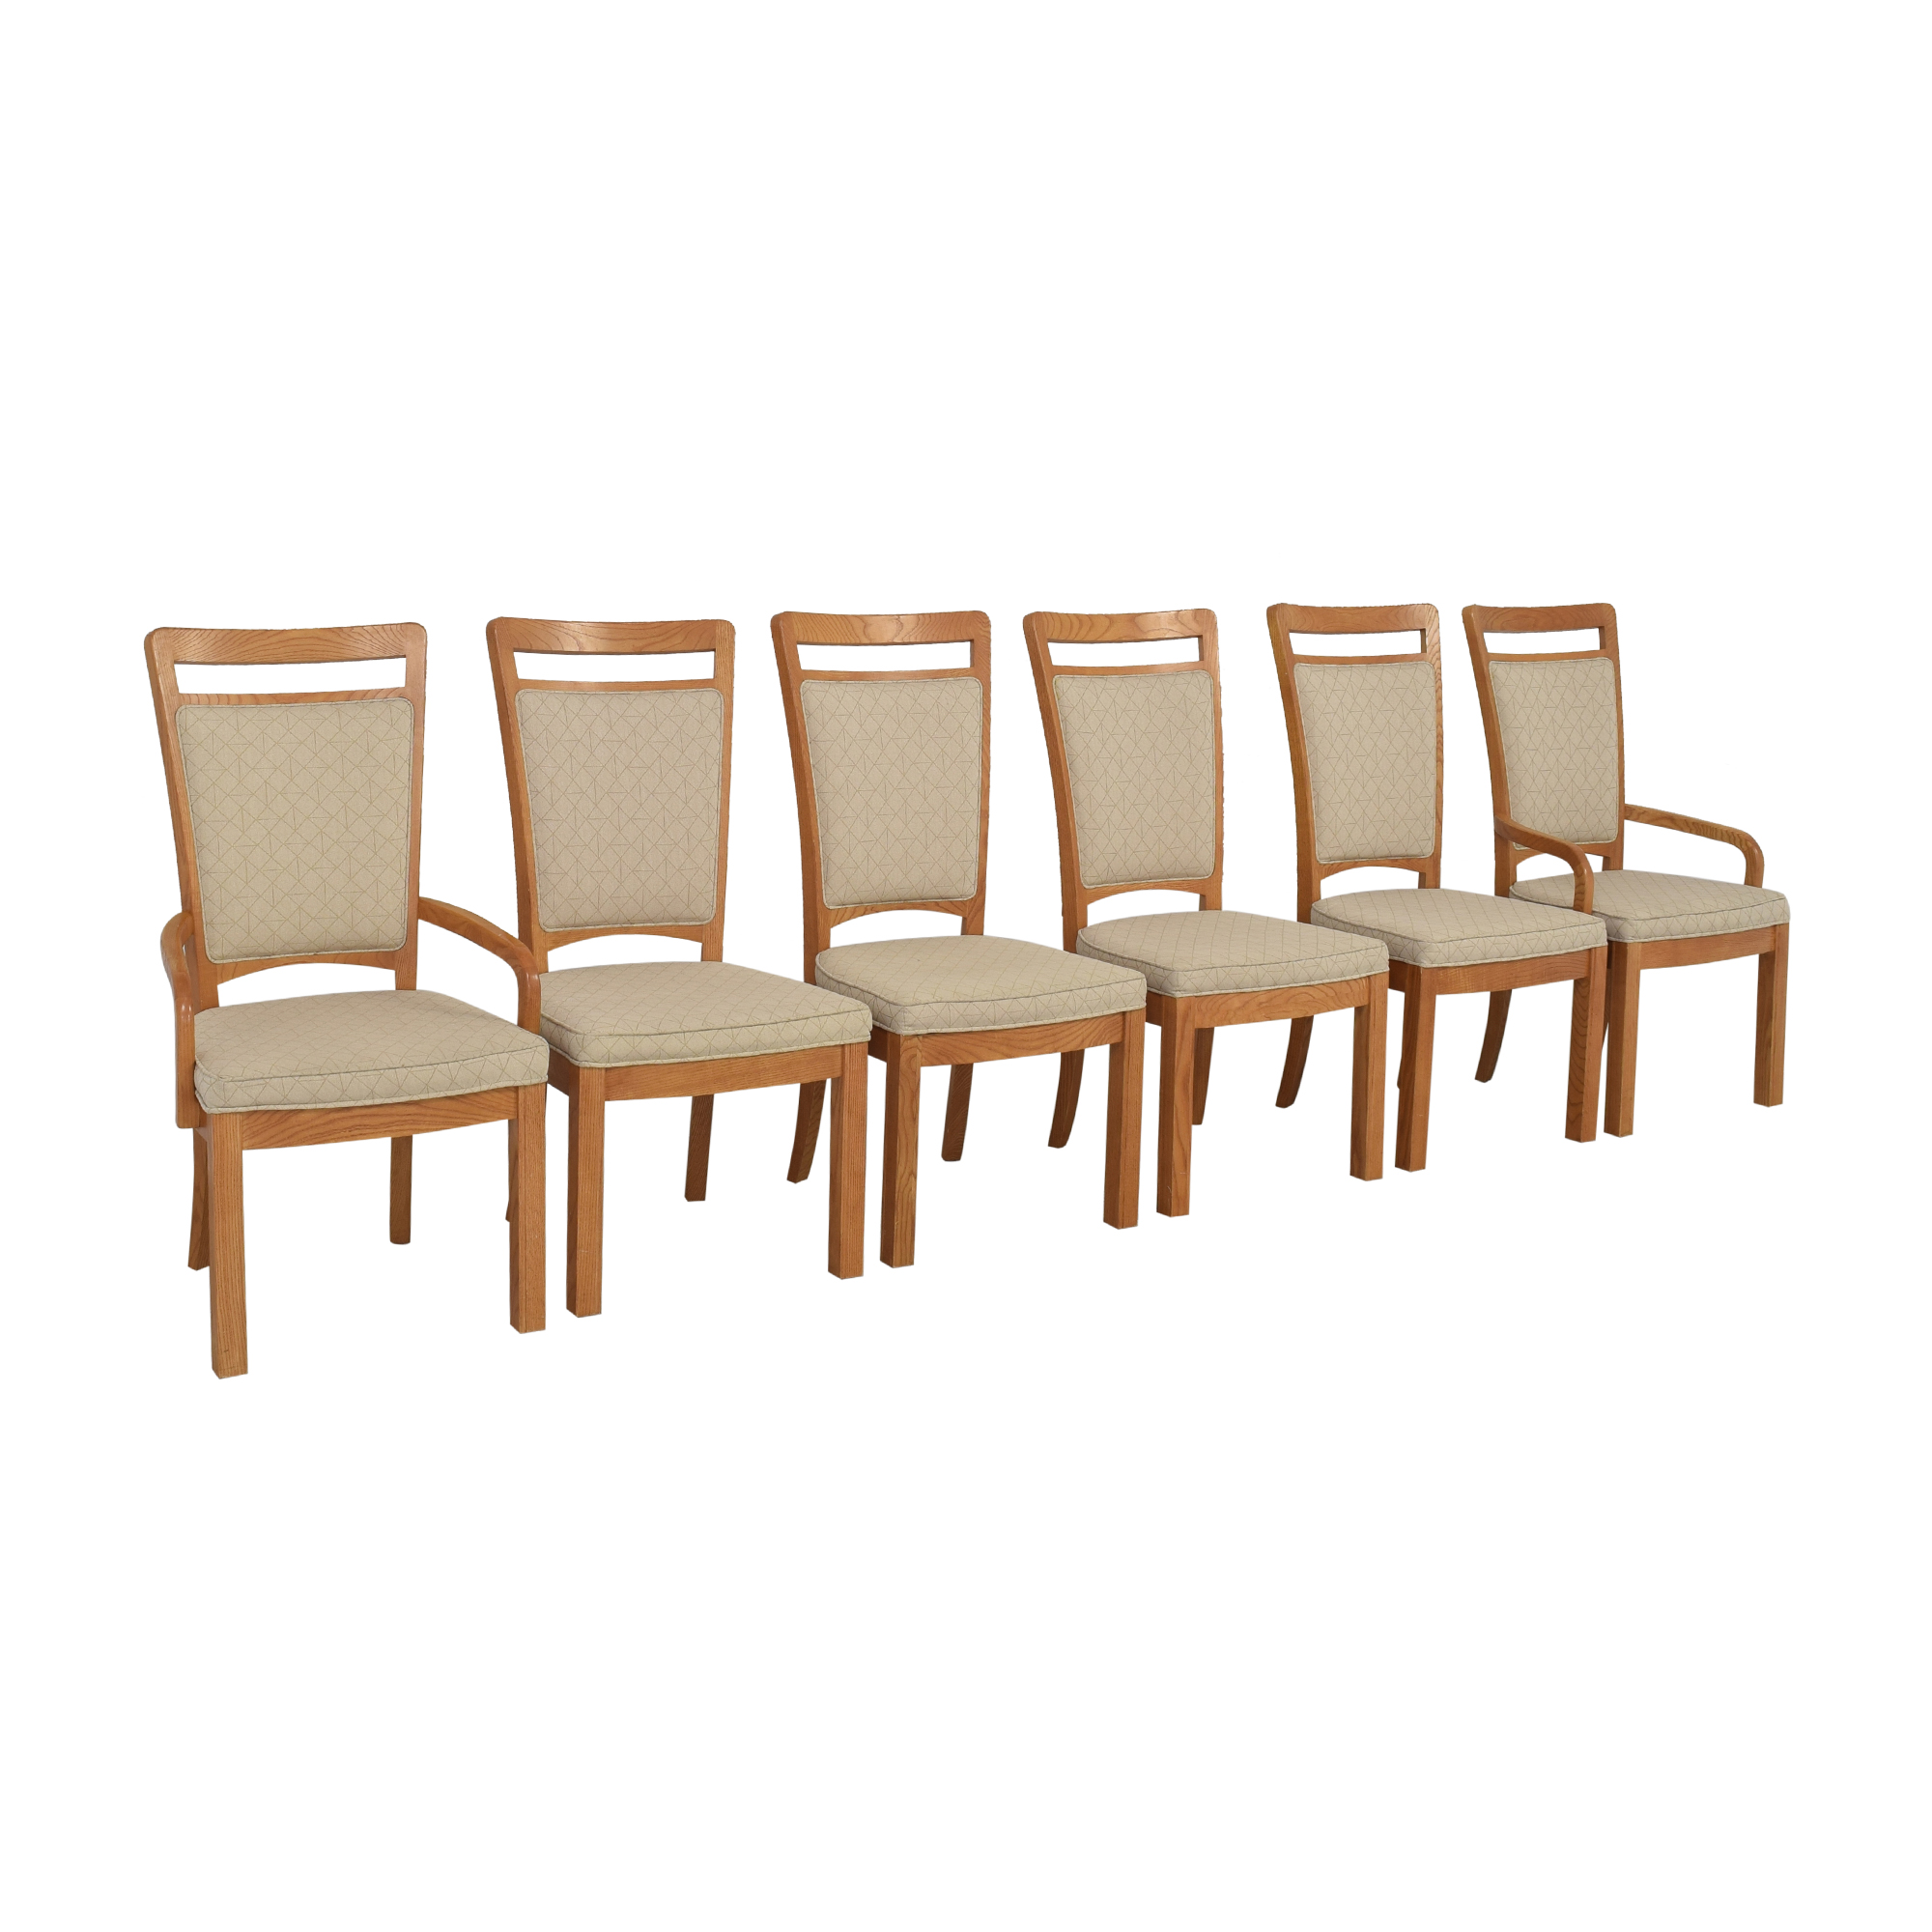 buy Stanley Furniture Stanley Upholstered Dining Chairs online